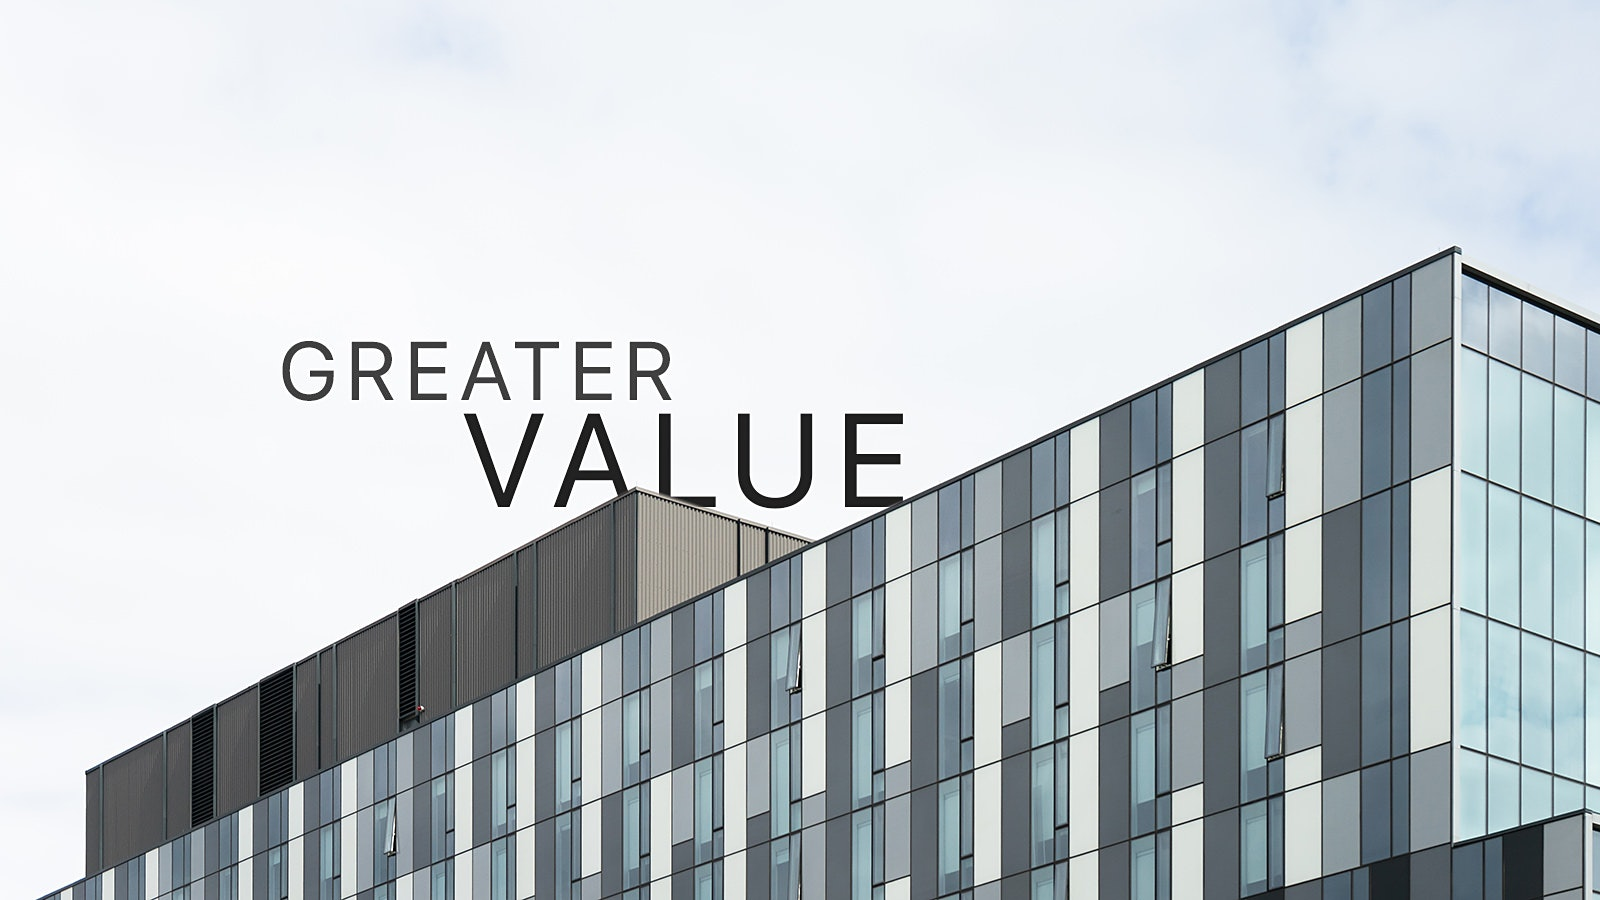 Find greater value in architectural photography